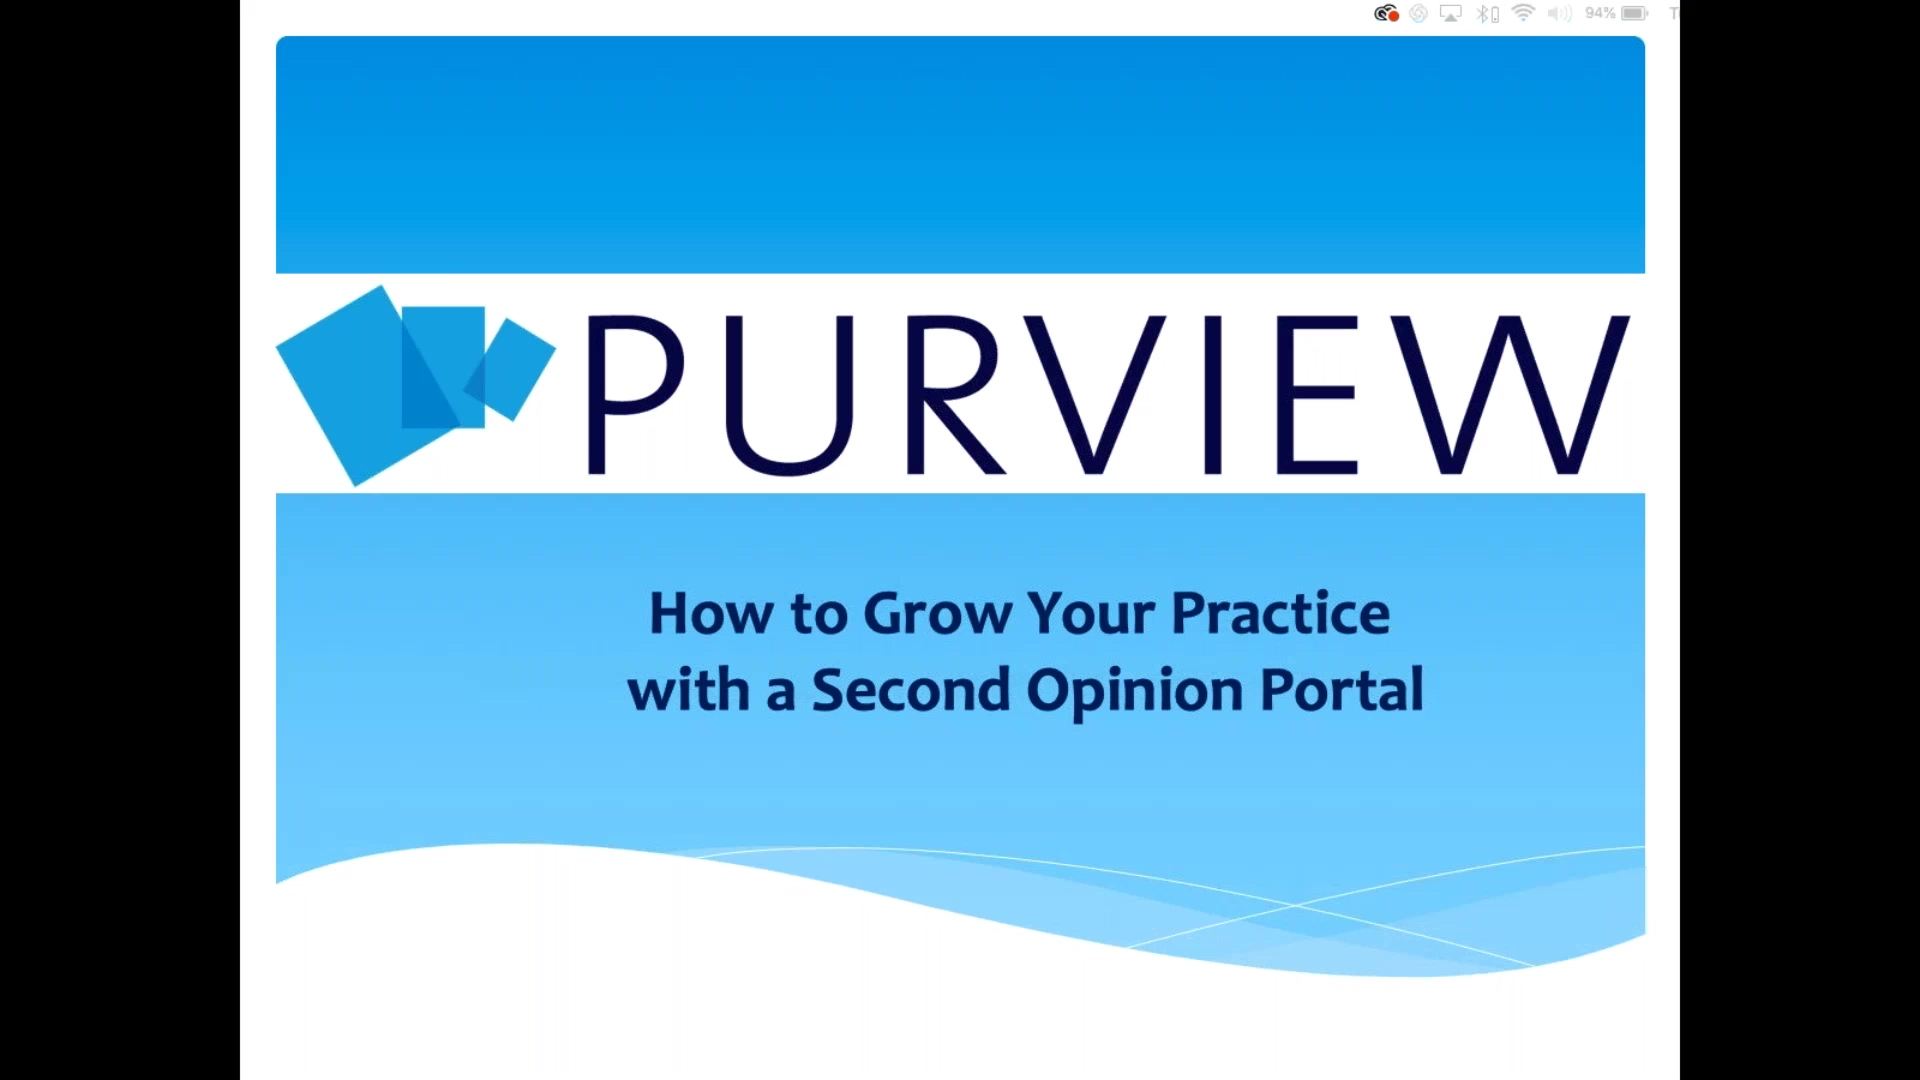 How to Grow Your Practice with a Second Opinion Portal